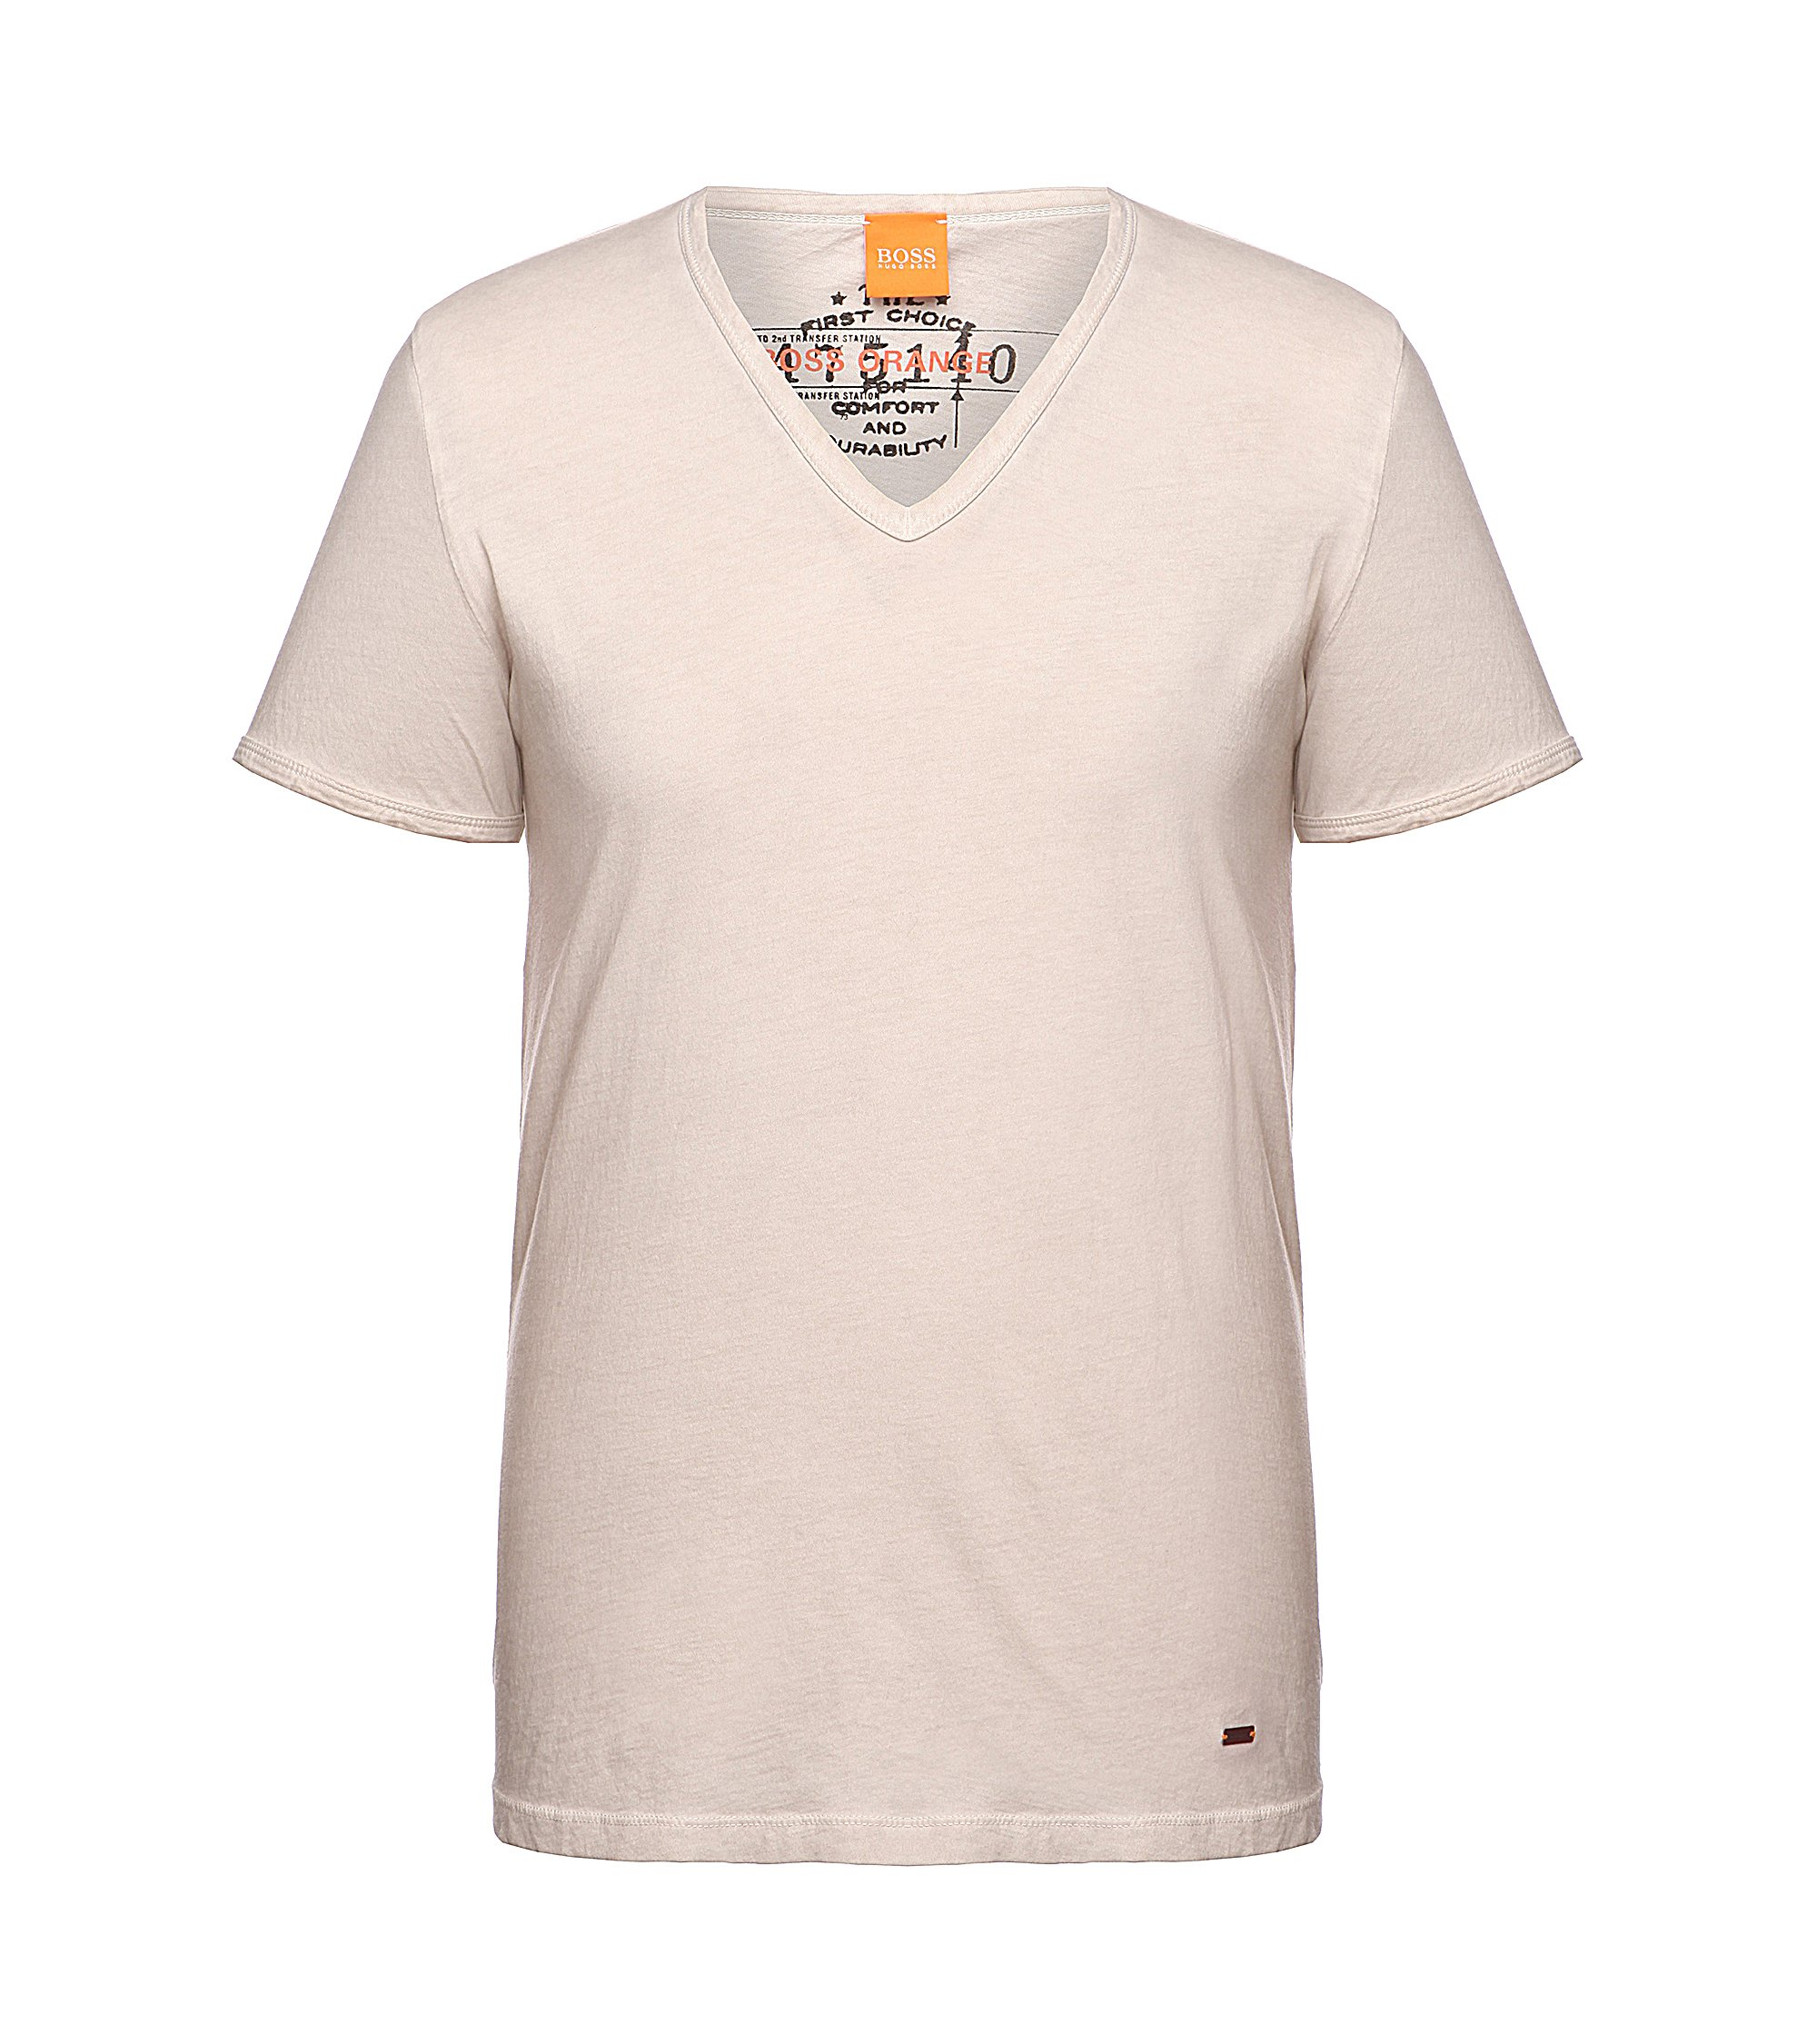 T-shirt Regular Fit en coton garment dyed, Beige clair